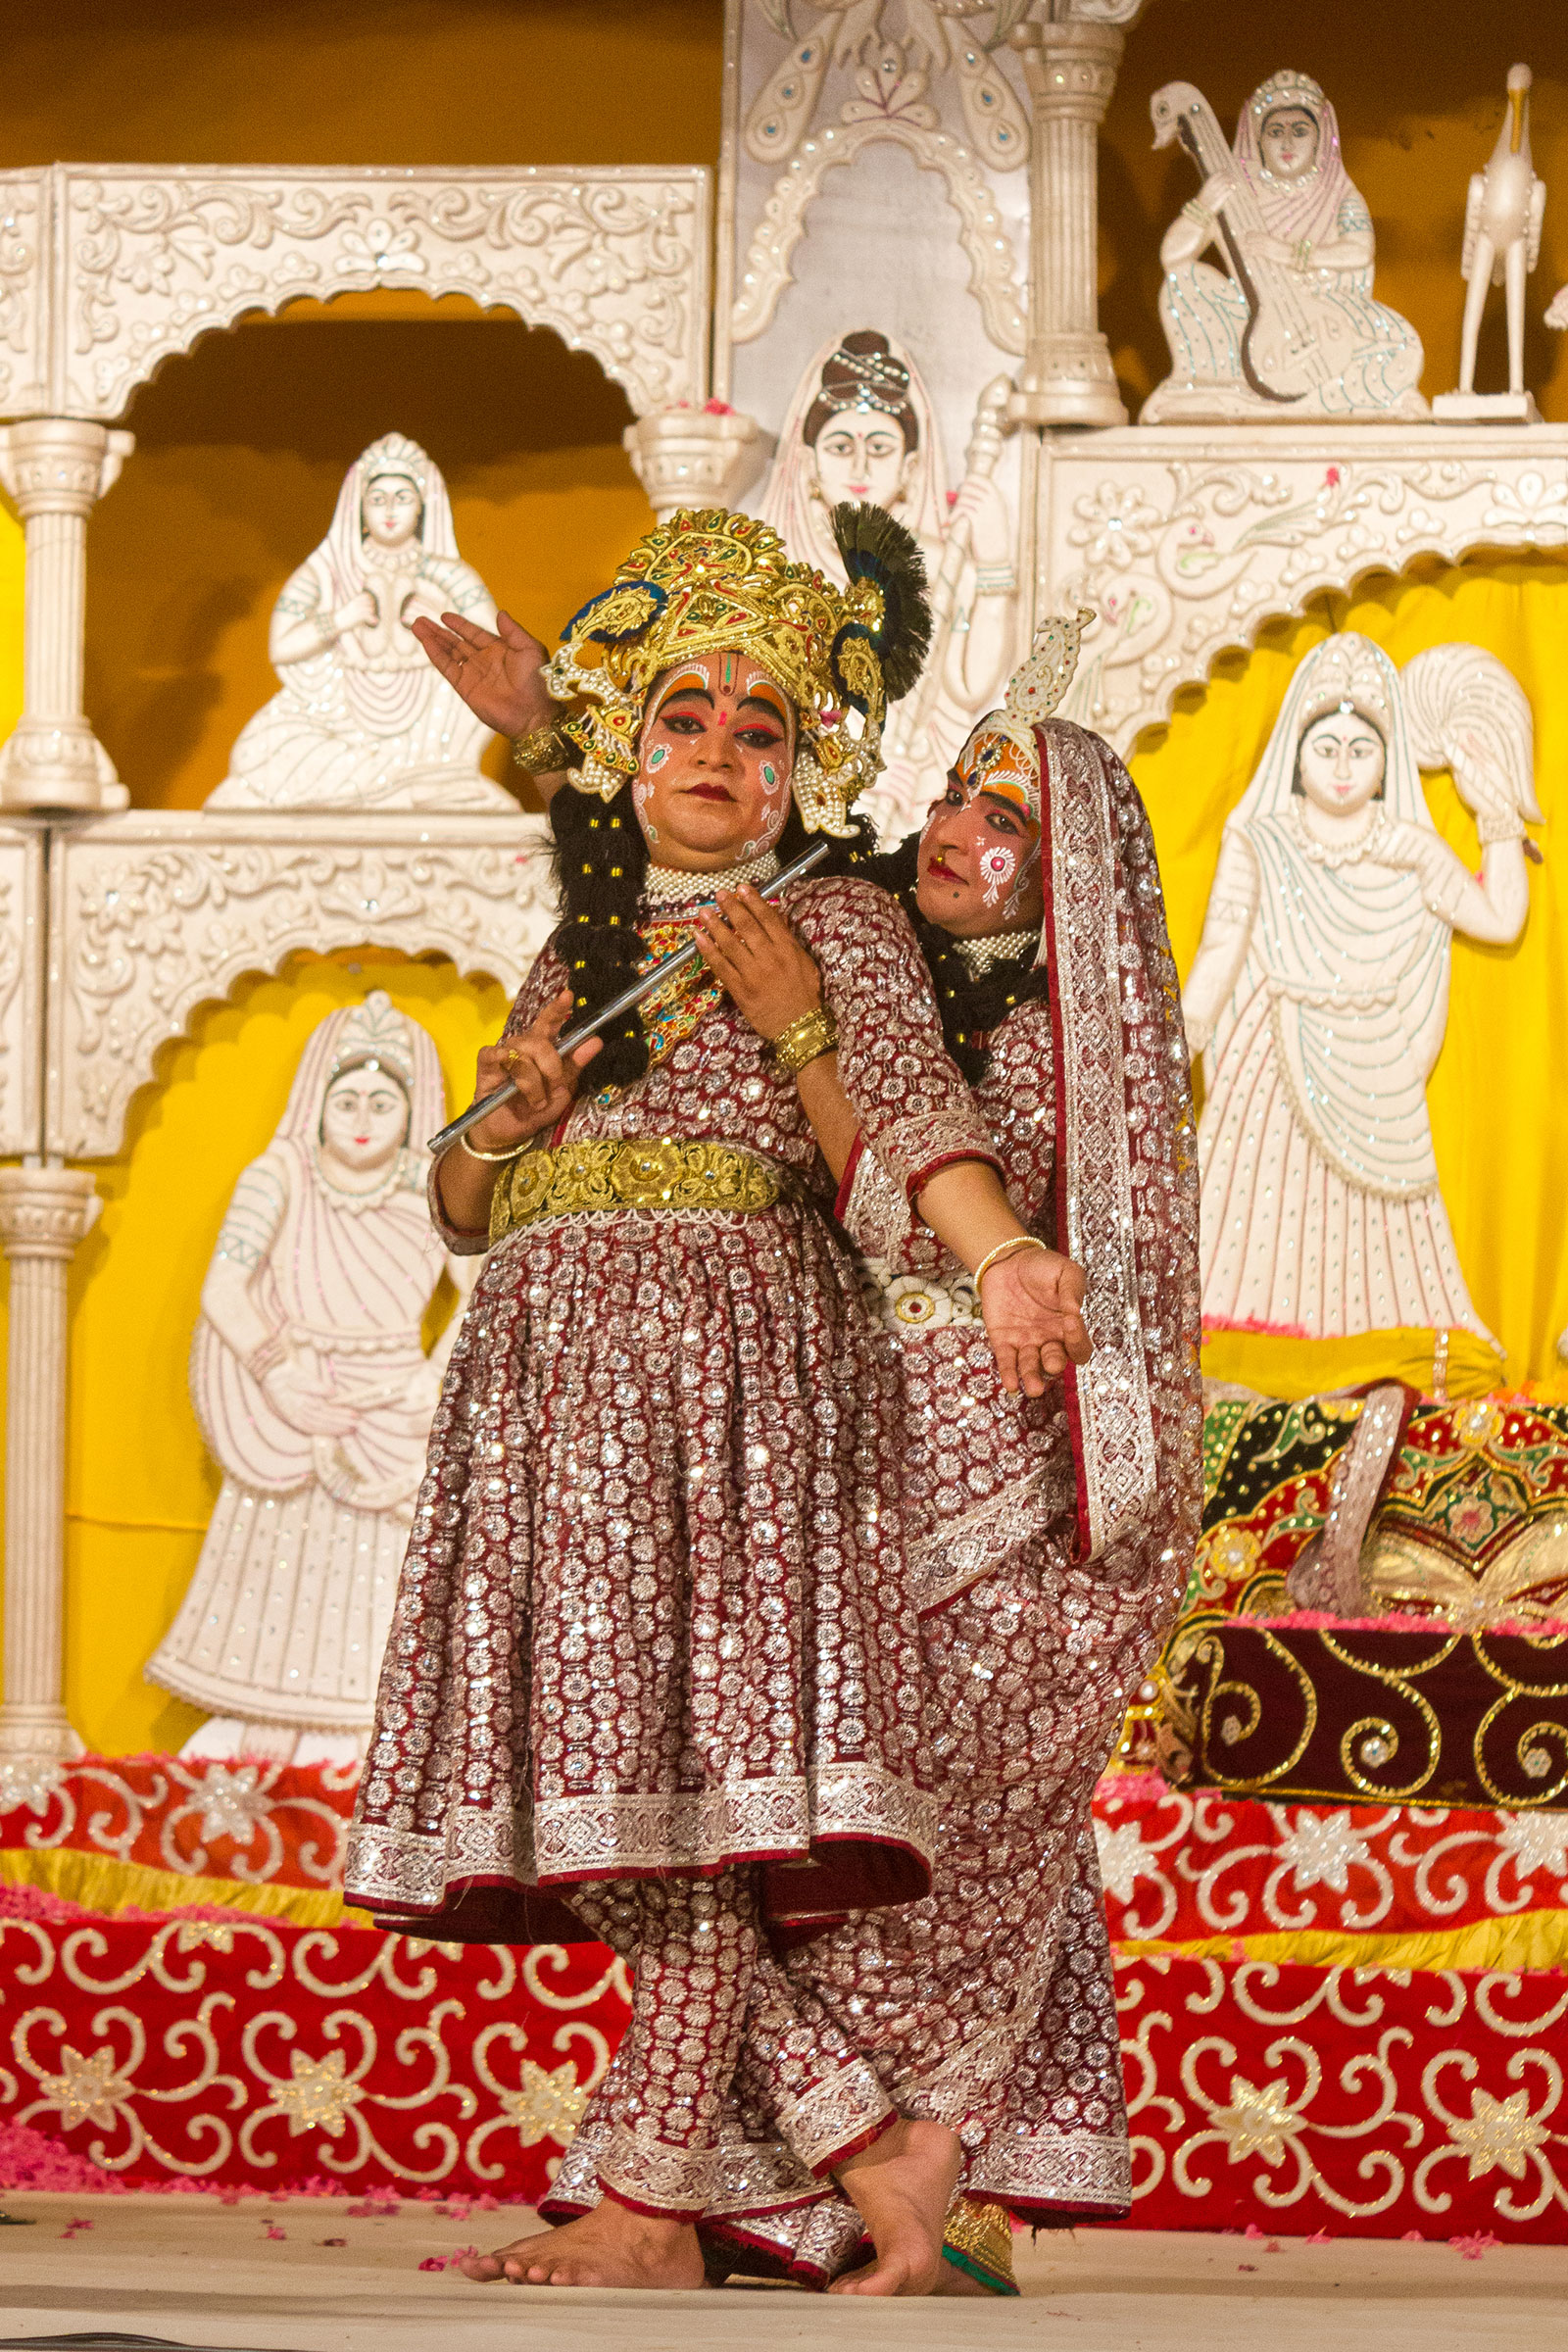 Actors Playing role of Krishna and Radha